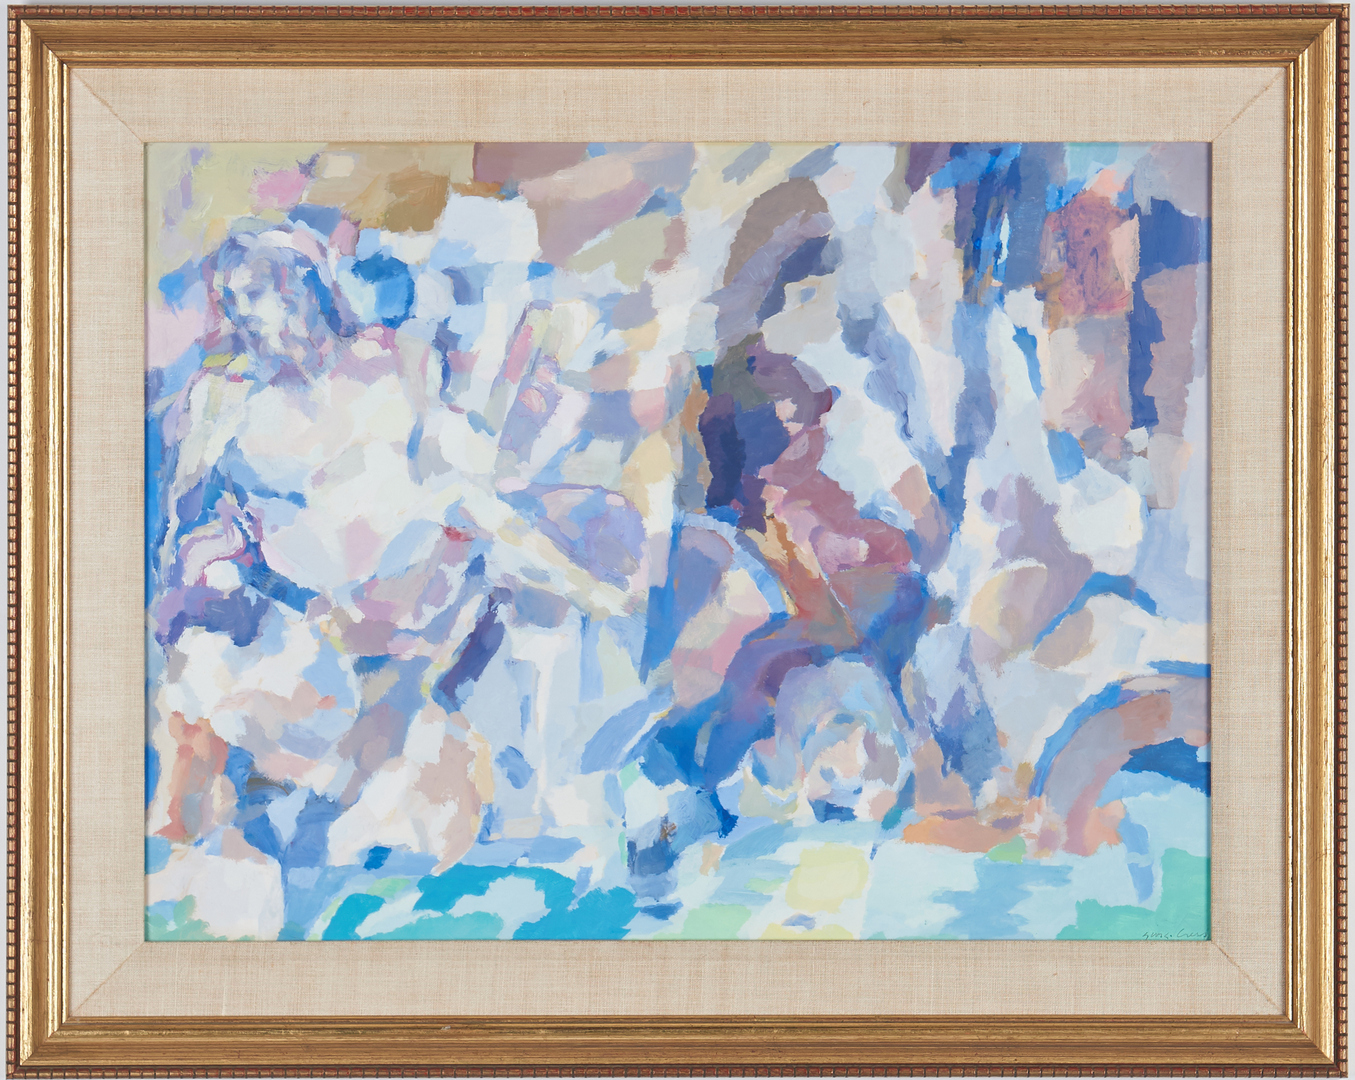 Lot 276: George Cress Oil on Paper Abstract Landscape